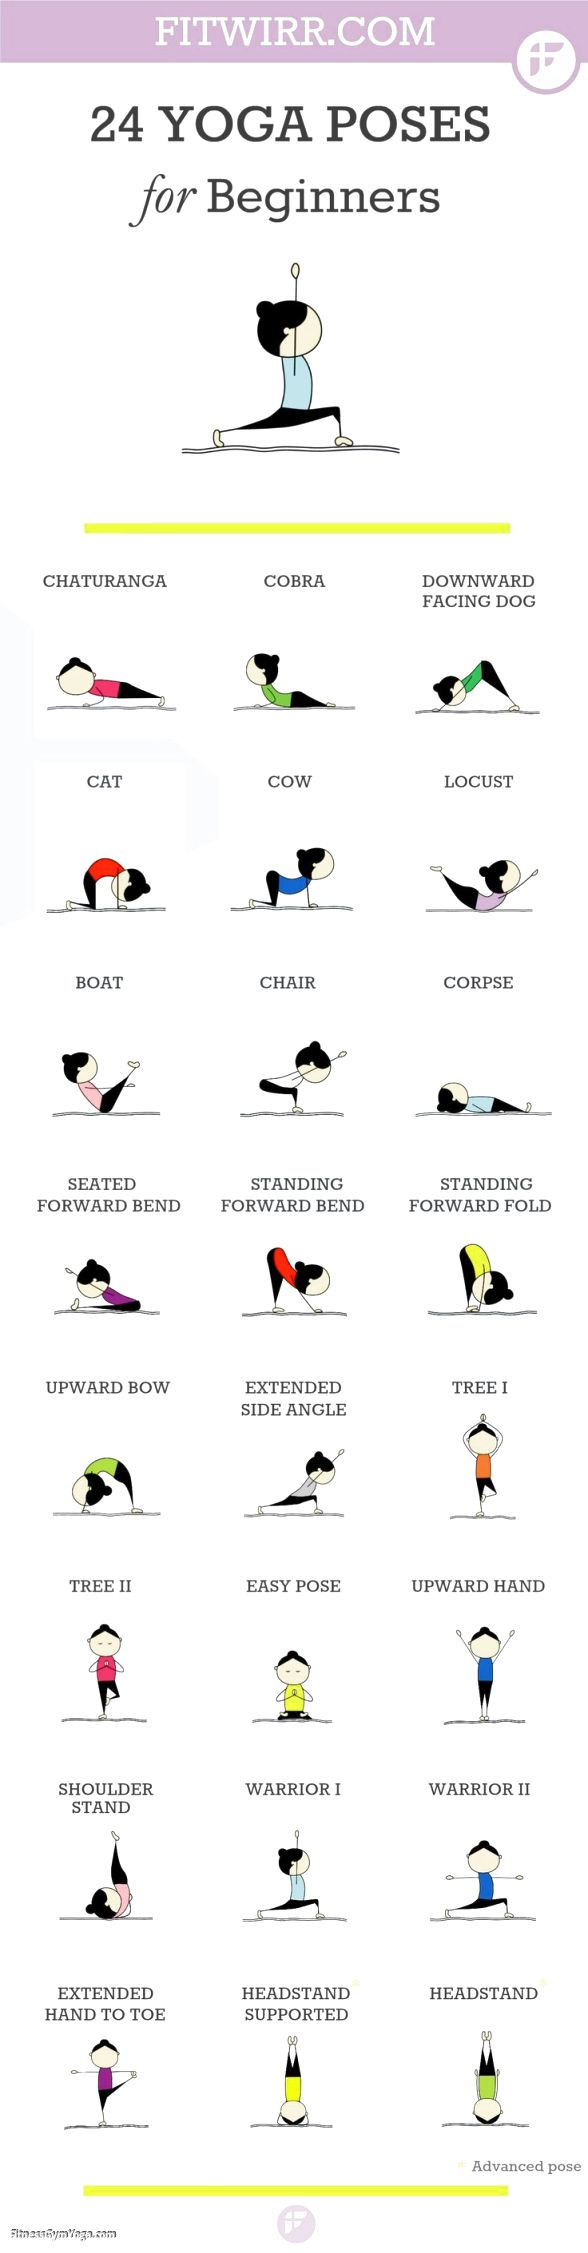 yoga poses meditation work out picture media work out